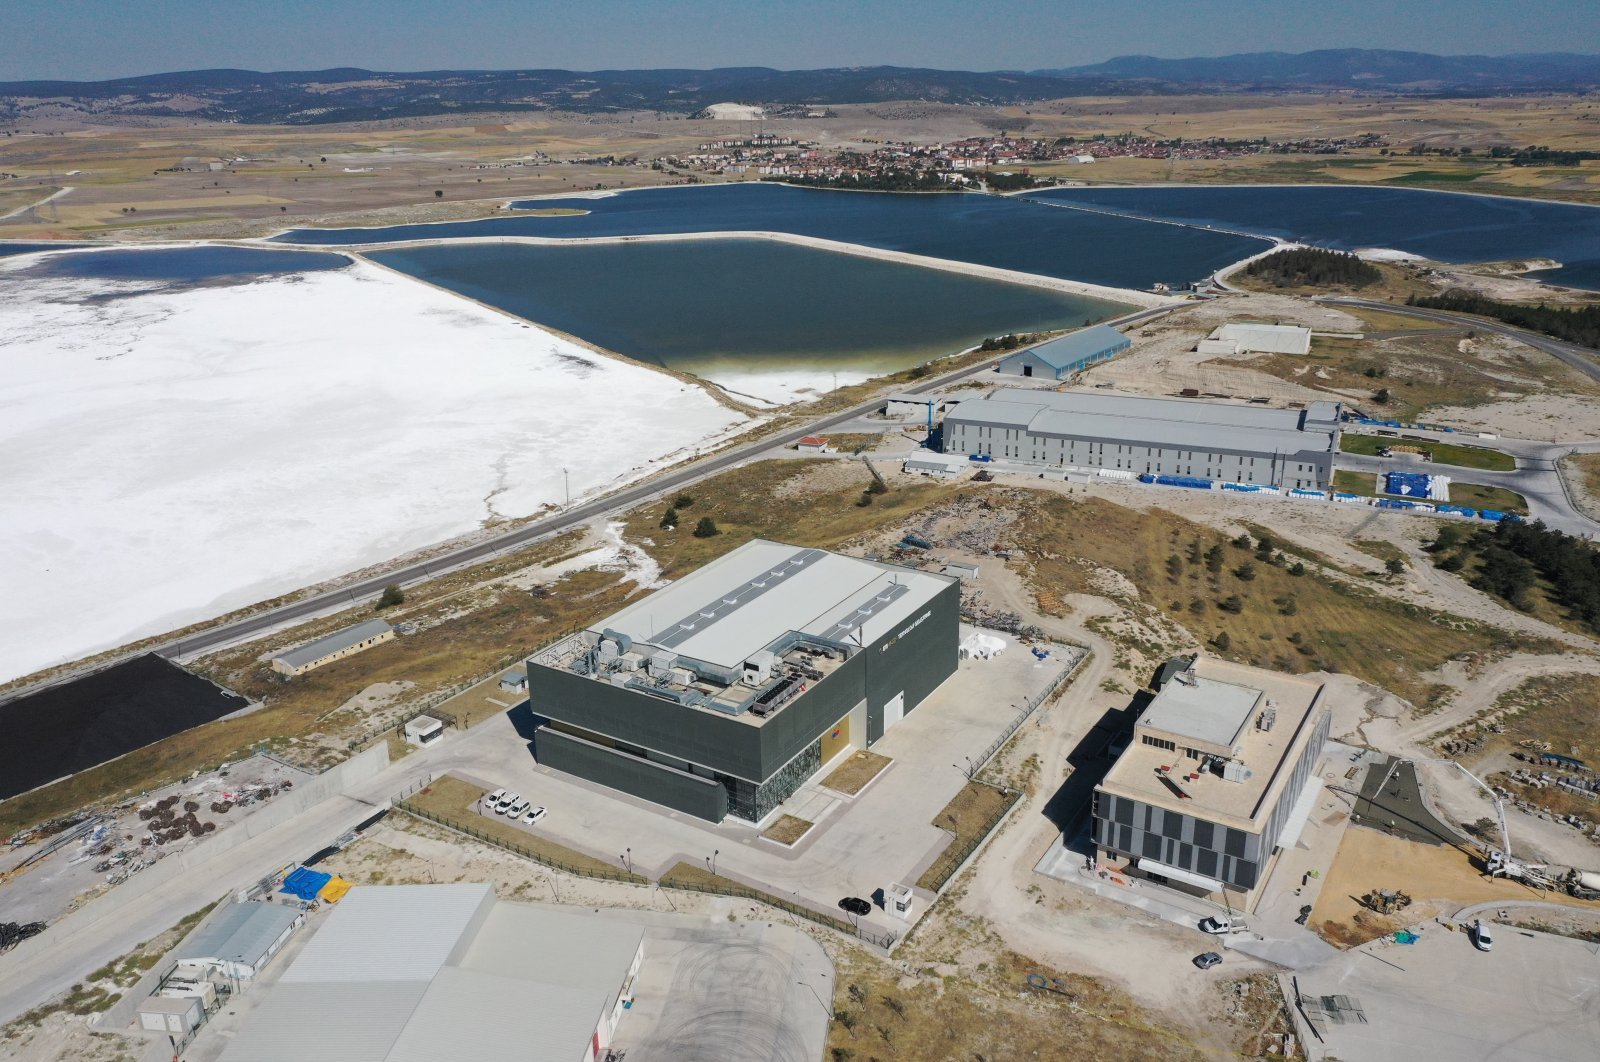 A view of the facility where lithium will be produced from boron resources in the northwestern province of Eskişehir, Turkey, Oct. 12, 2020. (AA Photo)